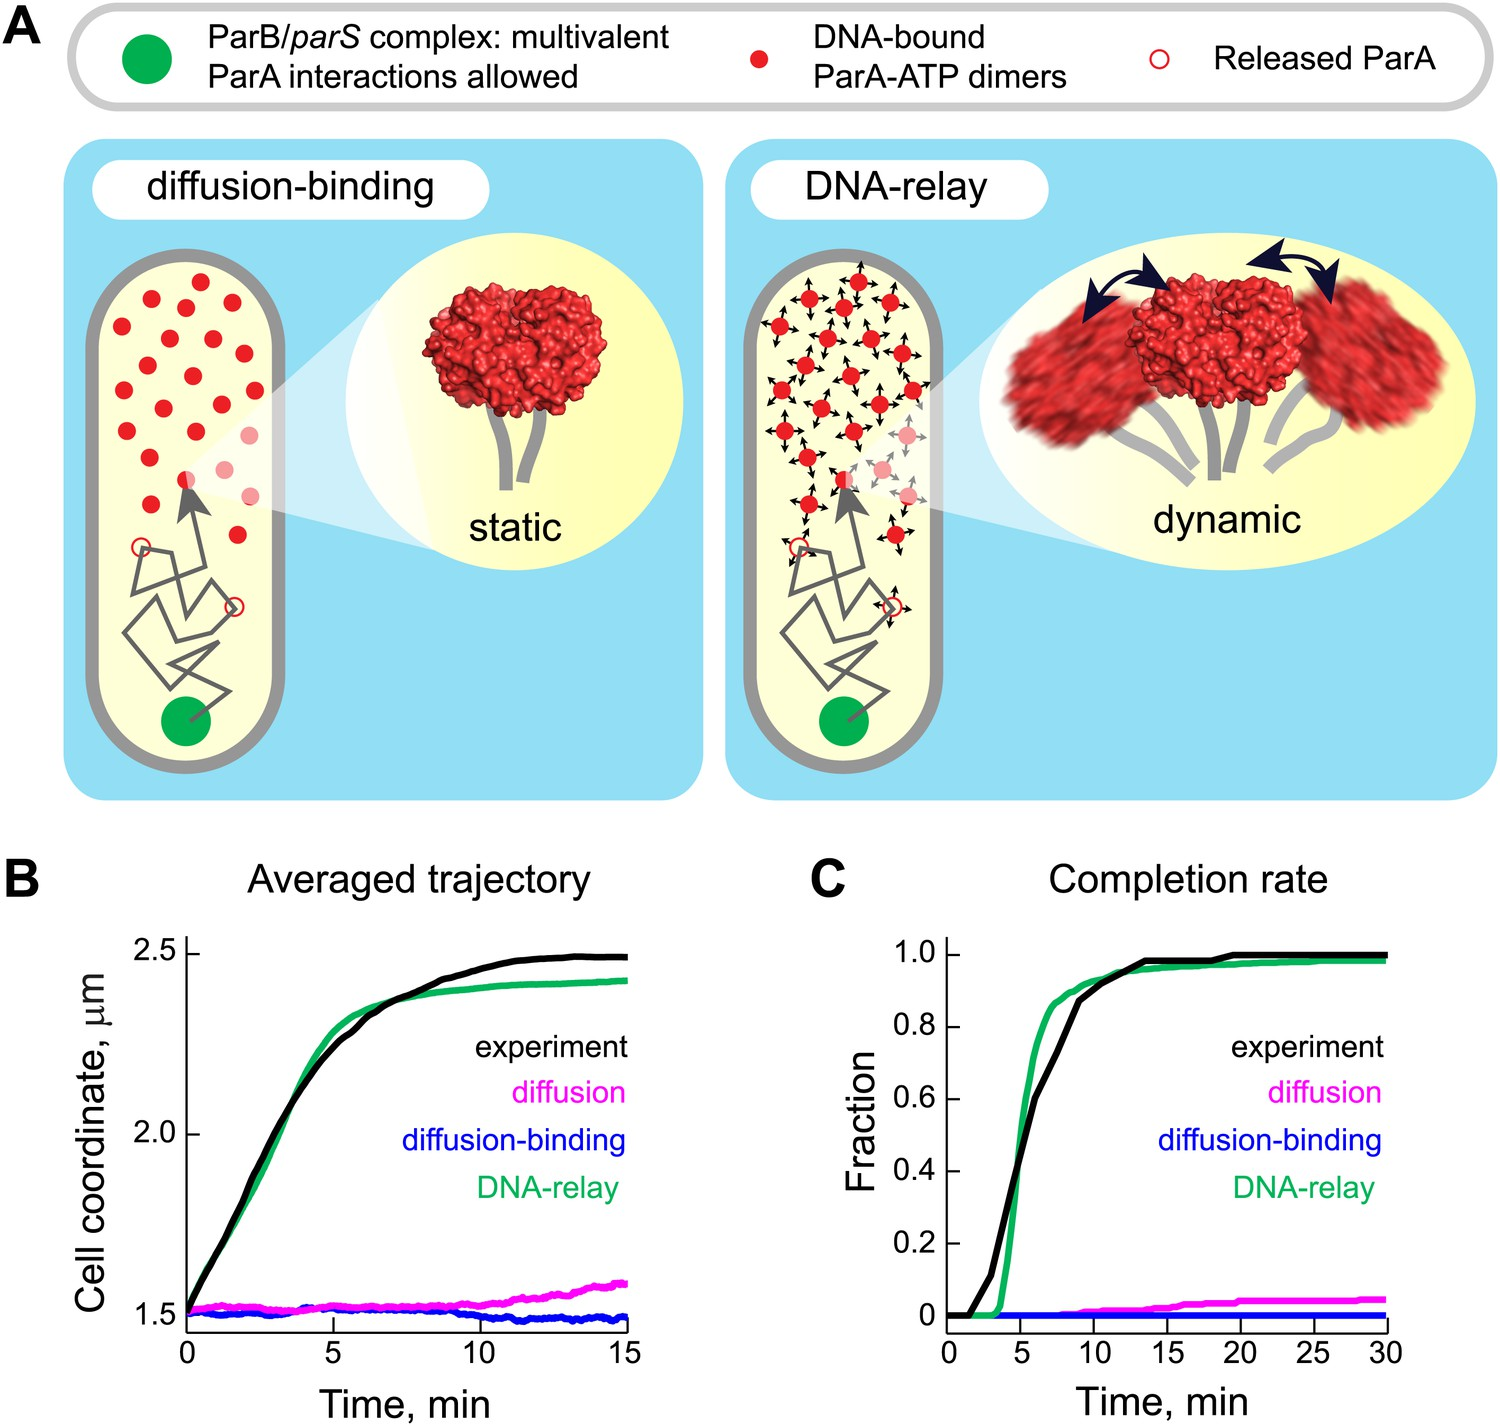 Evidence For A Dna Relay Mechanism In Parabs Mediated Chromosome Solid State Gunther The Model Results Robust Translocation Of Parb Pars Complex